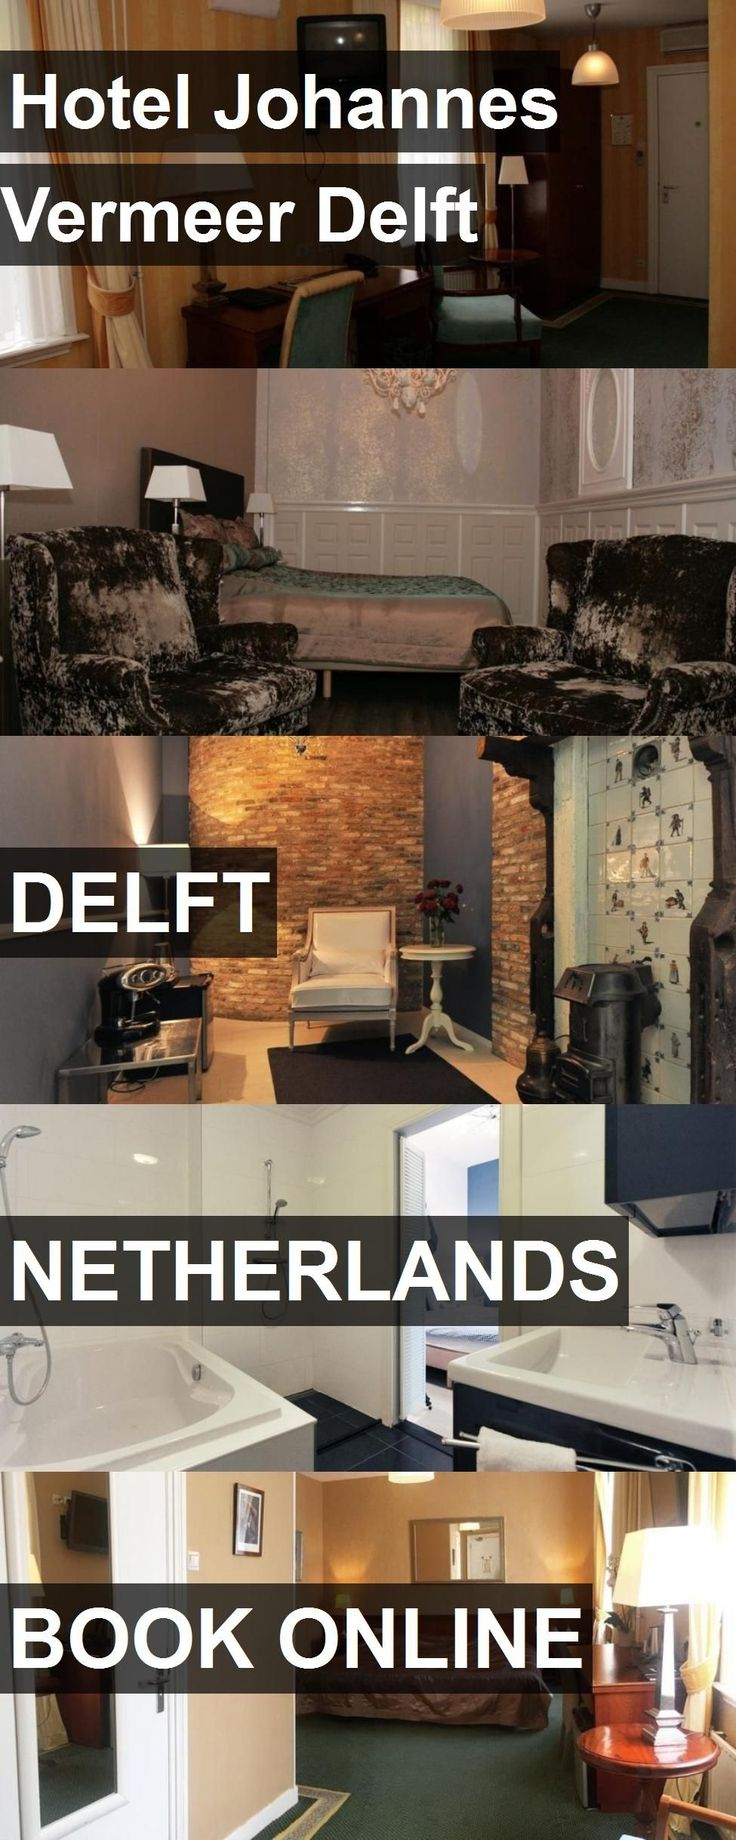 Hotel Hotel Johannes Vermeer Delft in Delft, Netherlands. For more information, photos, reviews and best prices please follow the link. #Netherlands #Delft #HotelJohannesVermeerDelft #hotel #travel #vacation